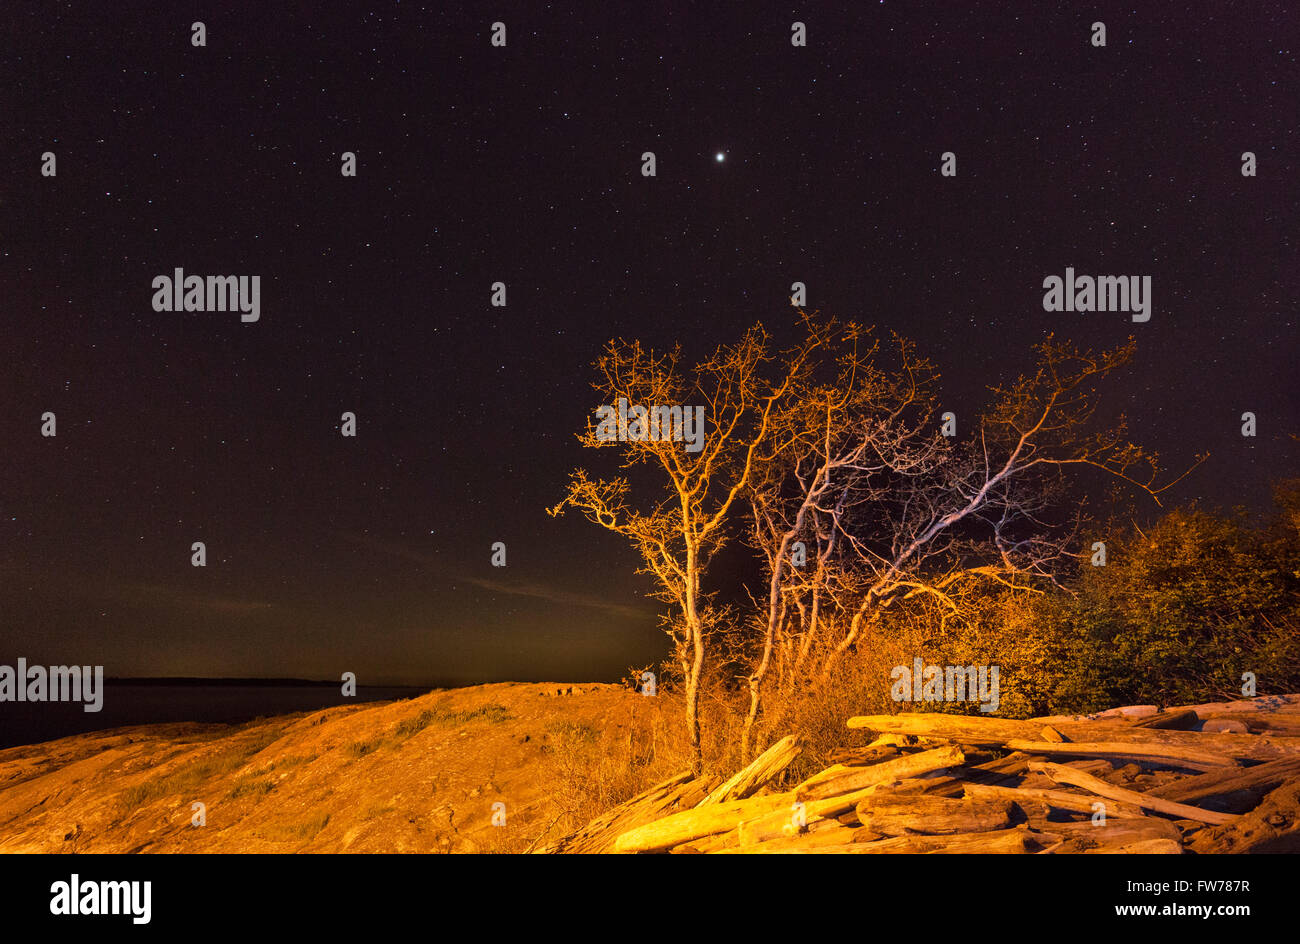 Driftwood and Garry Oak Tree with stars in night sky at Cattle Point-Victoria, British Columbia, Canada. - Stock Image